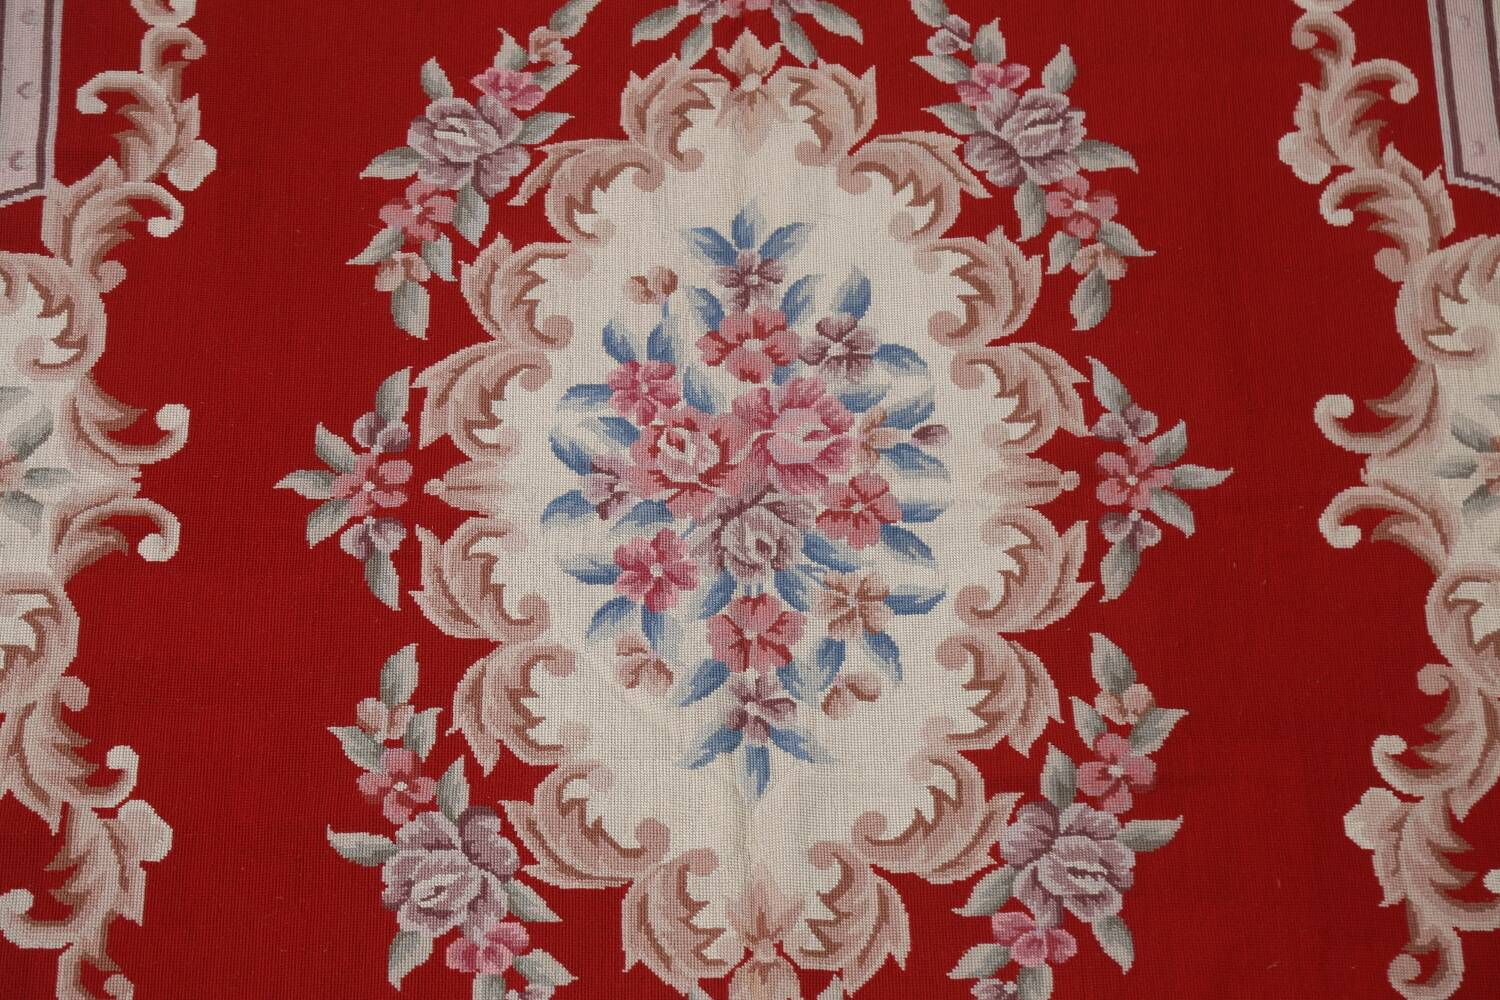 Floral Red Aubusson Chinese Wool Area Rug 5x9 image 5